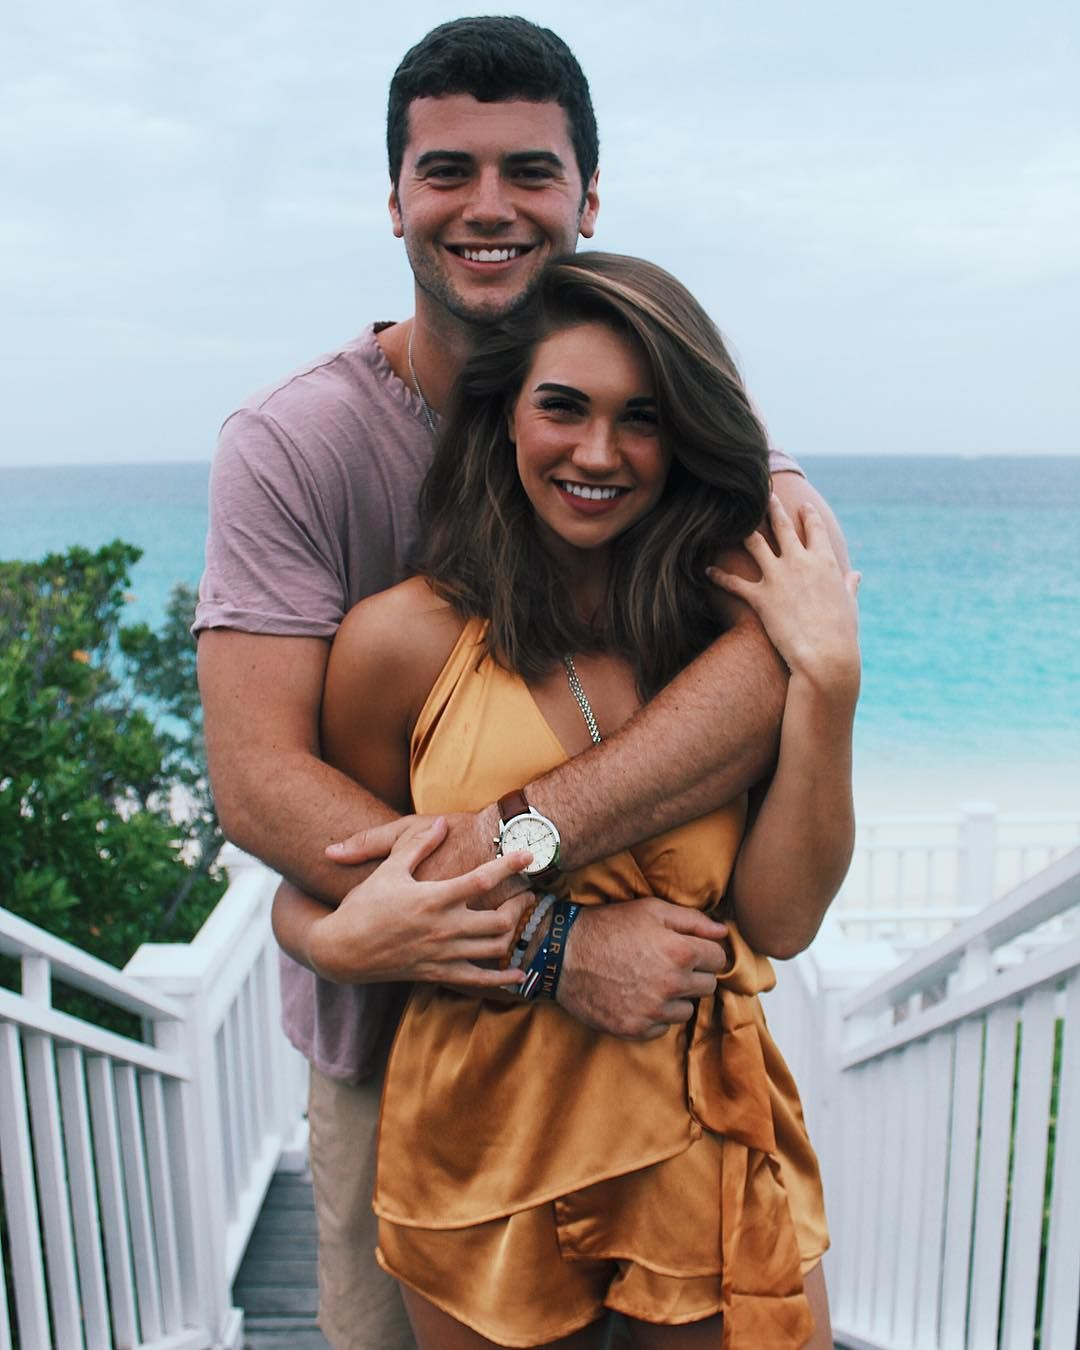 Jarrett Stidham On Instagram My Piece Of Paradise In 2020 Instagram Stidham Couples